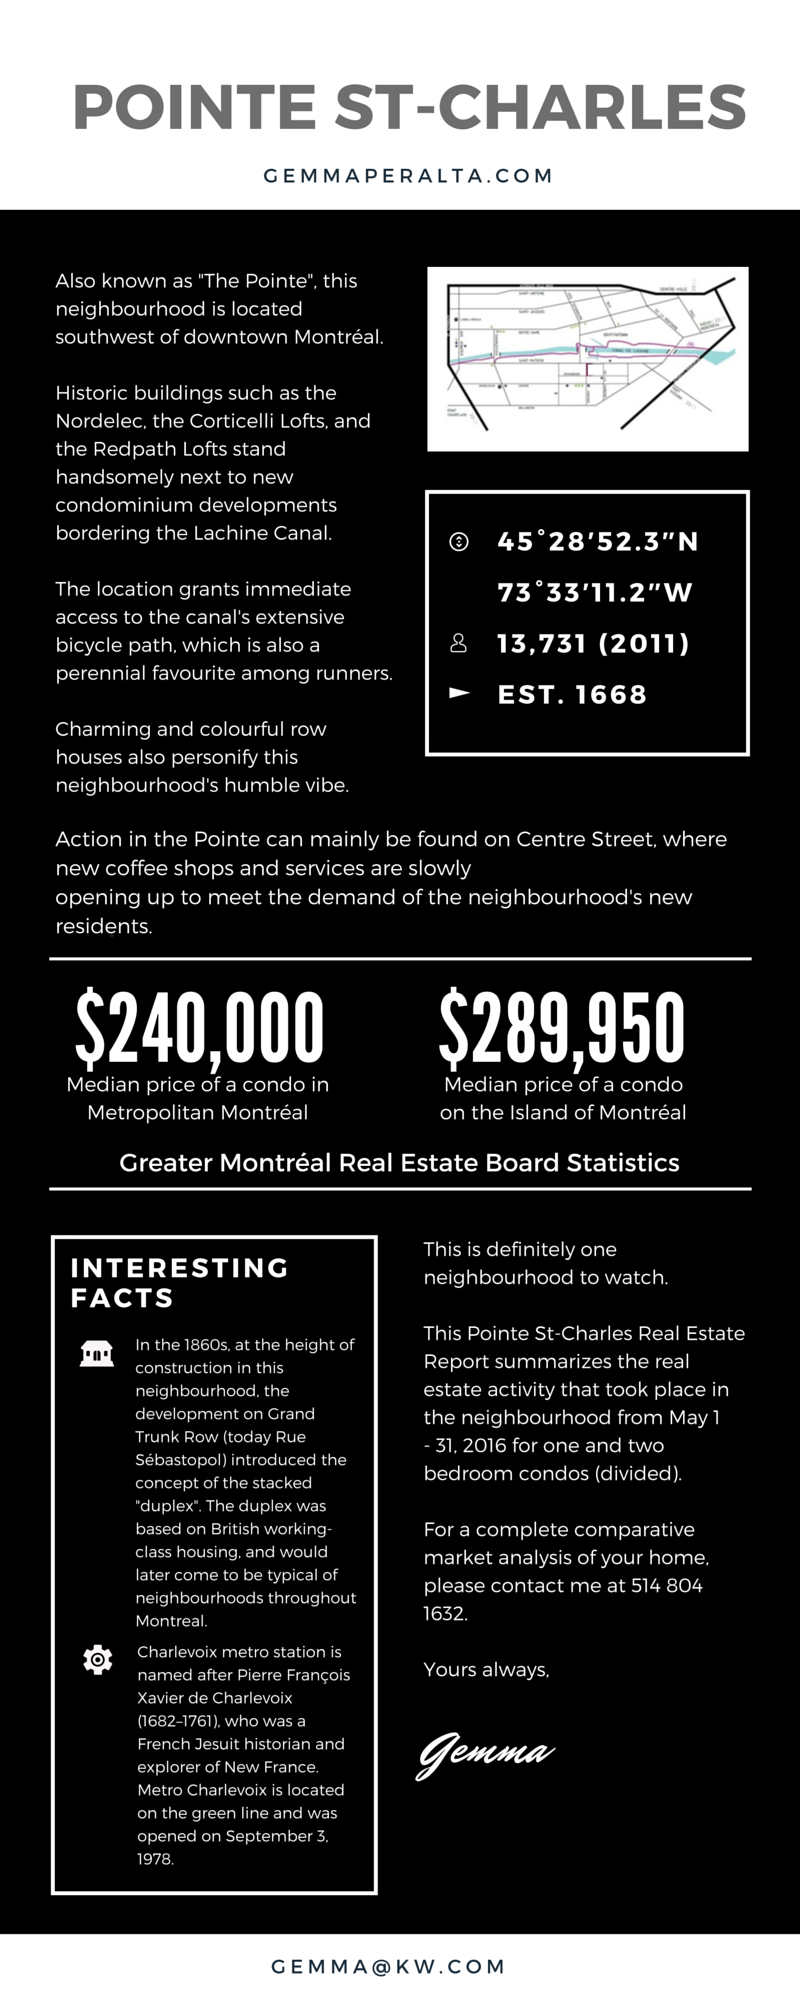 Pointe St-Charles Real Estate Market Report May 2016 01